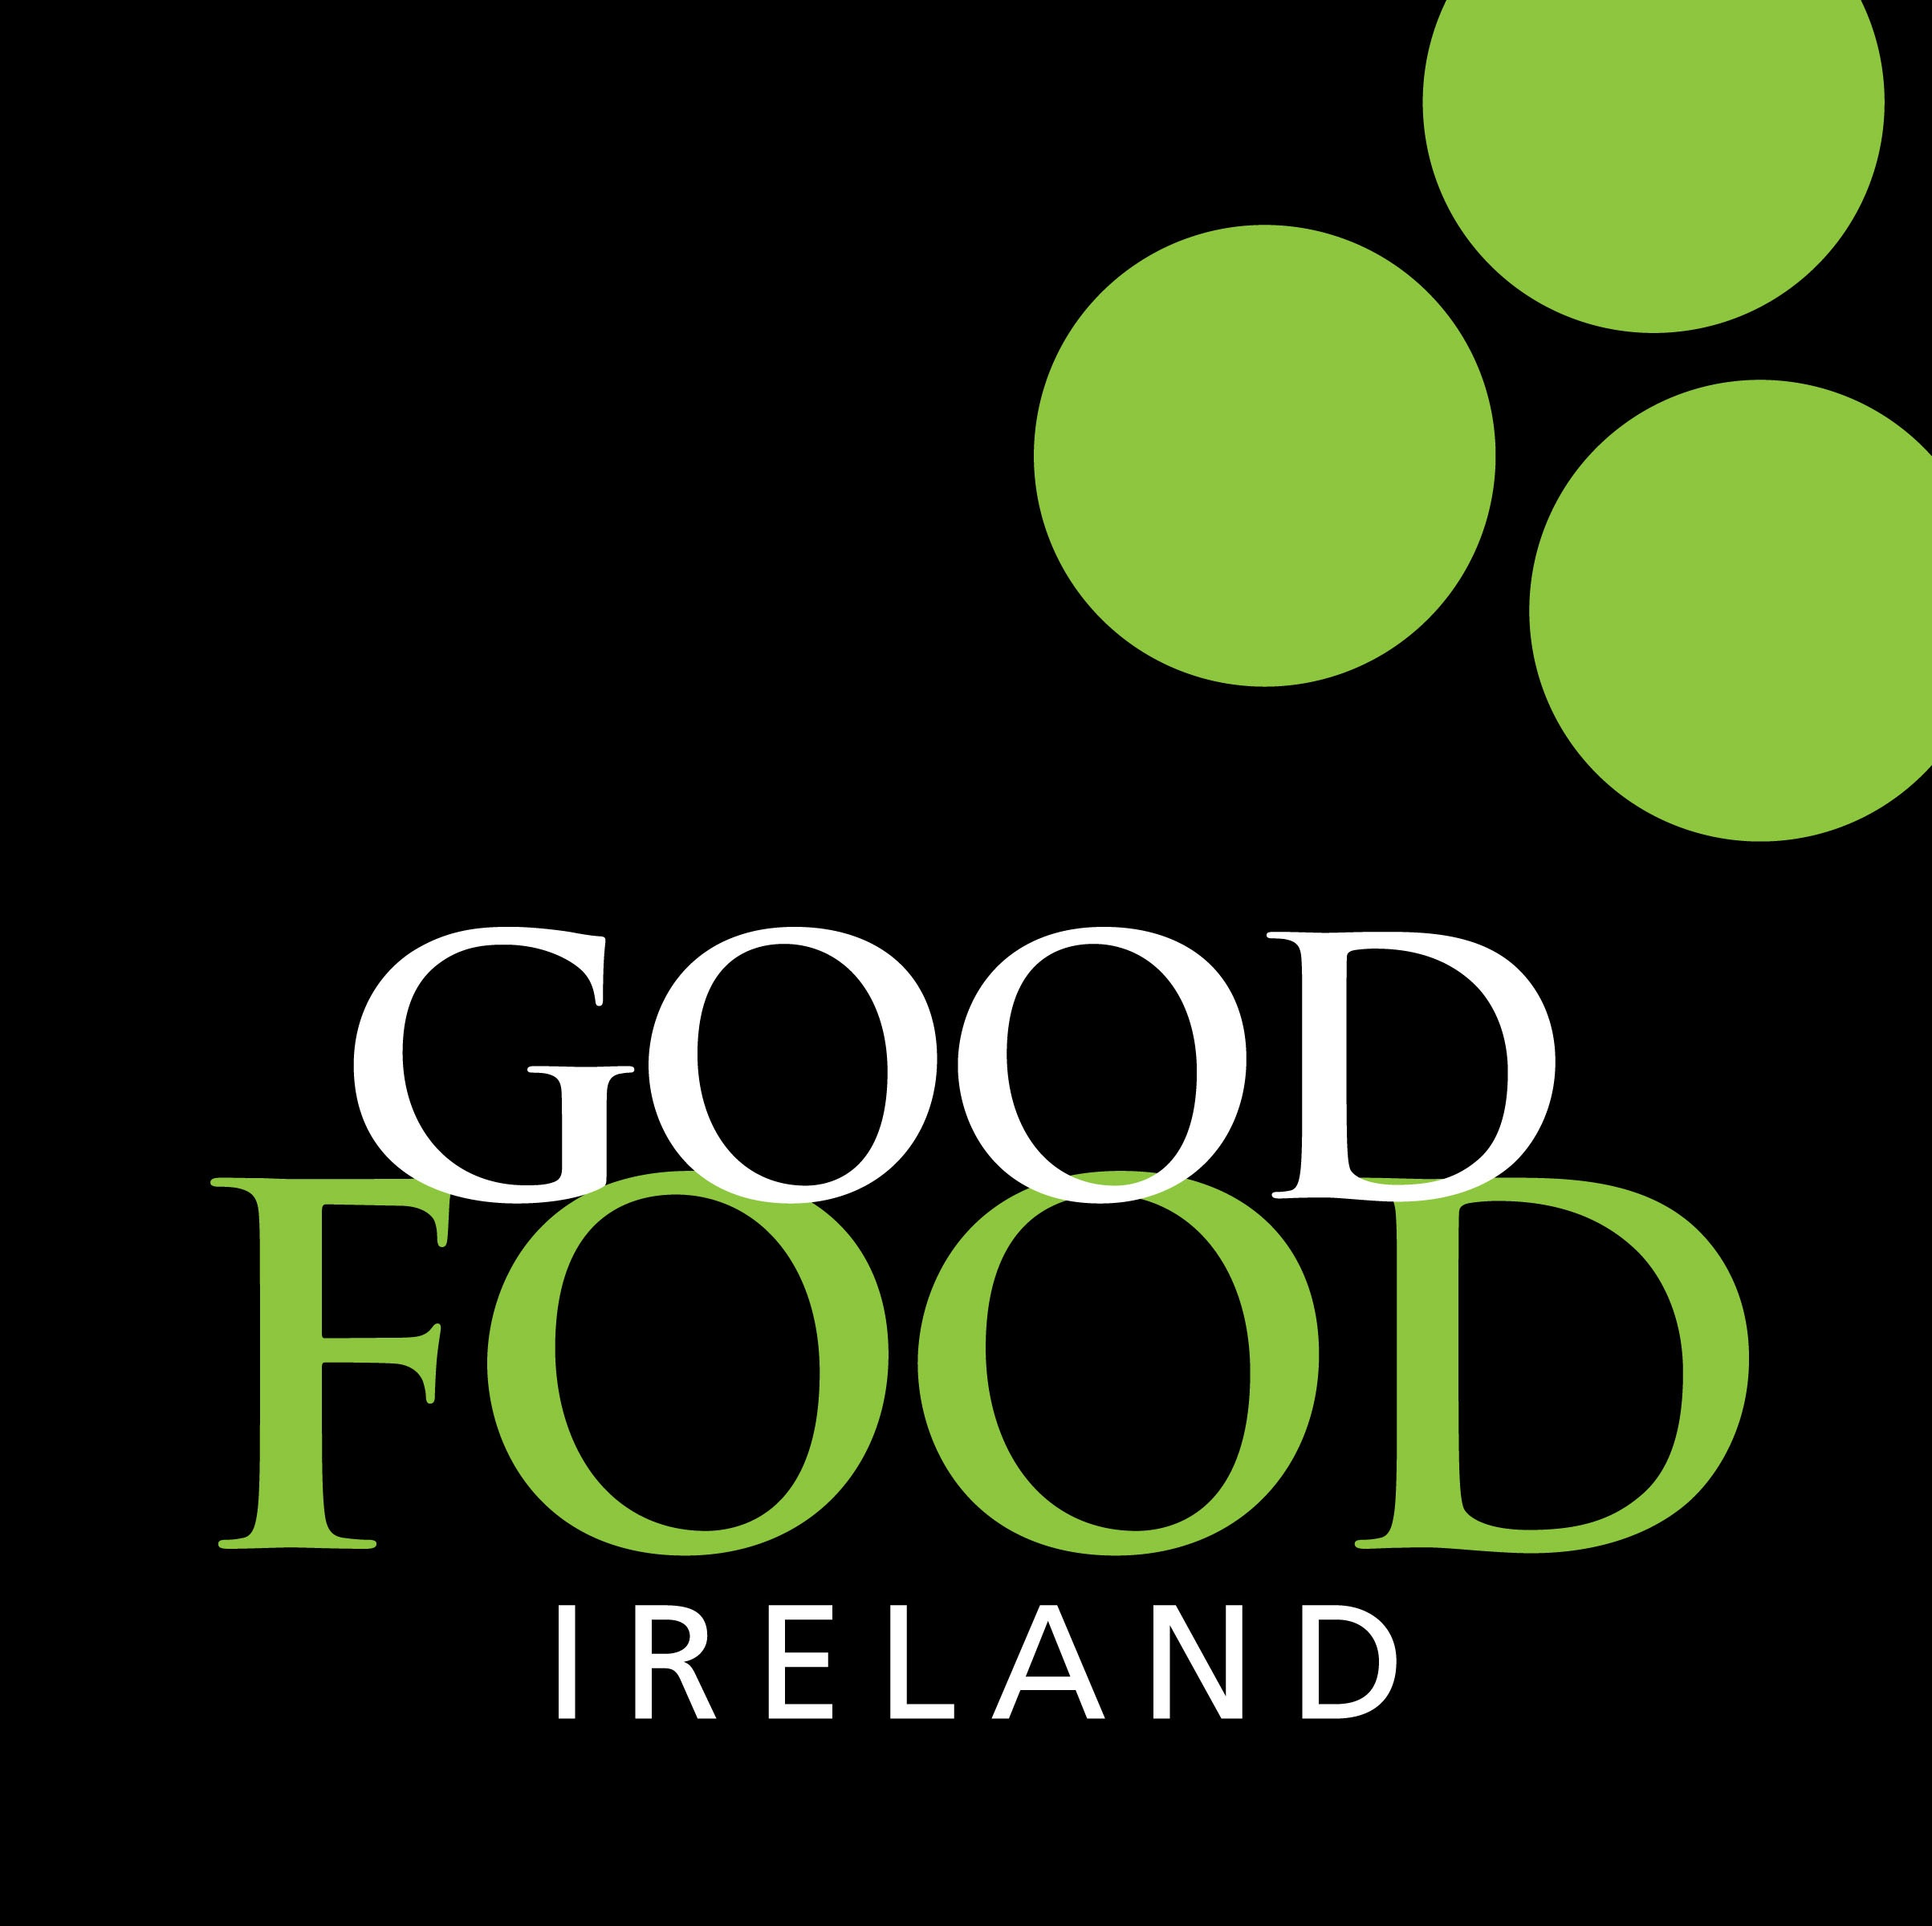 The Good Food Ireland Village at The Dubai Duty Free Irish Derby Event Category: Food and Racing - Country: Ireland - Town: Kildare